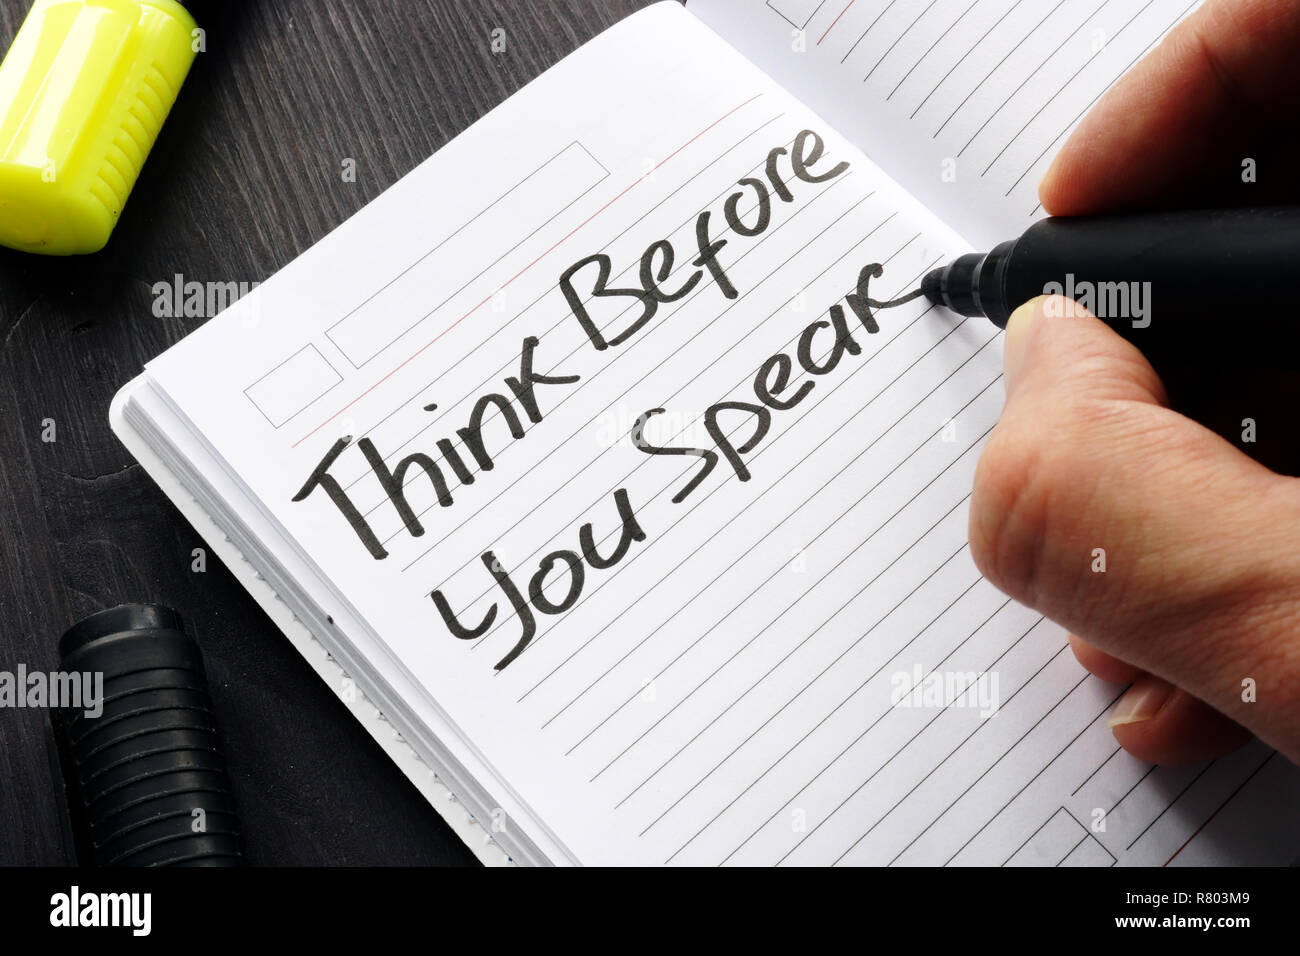 Think Before You Speak handwritten on a note. - Stock Image